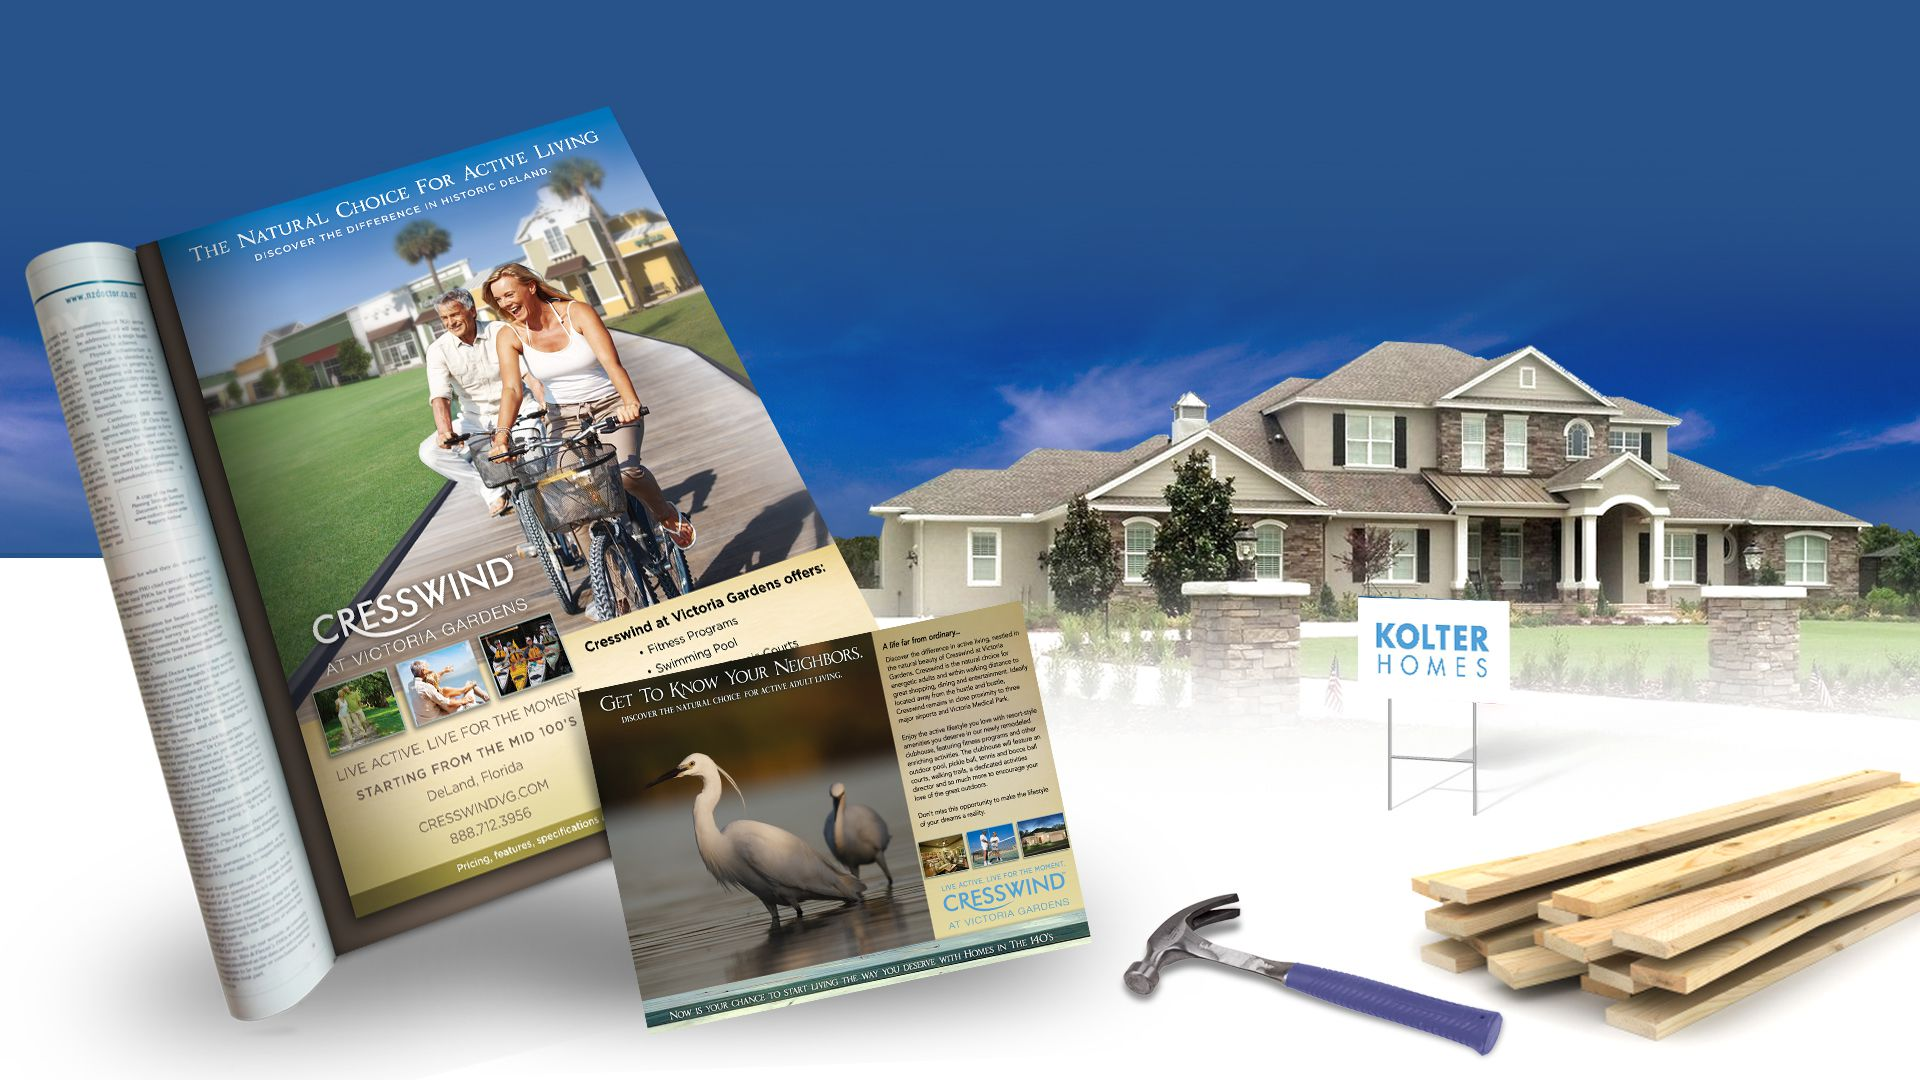 Kolter Homes Evk Advertising